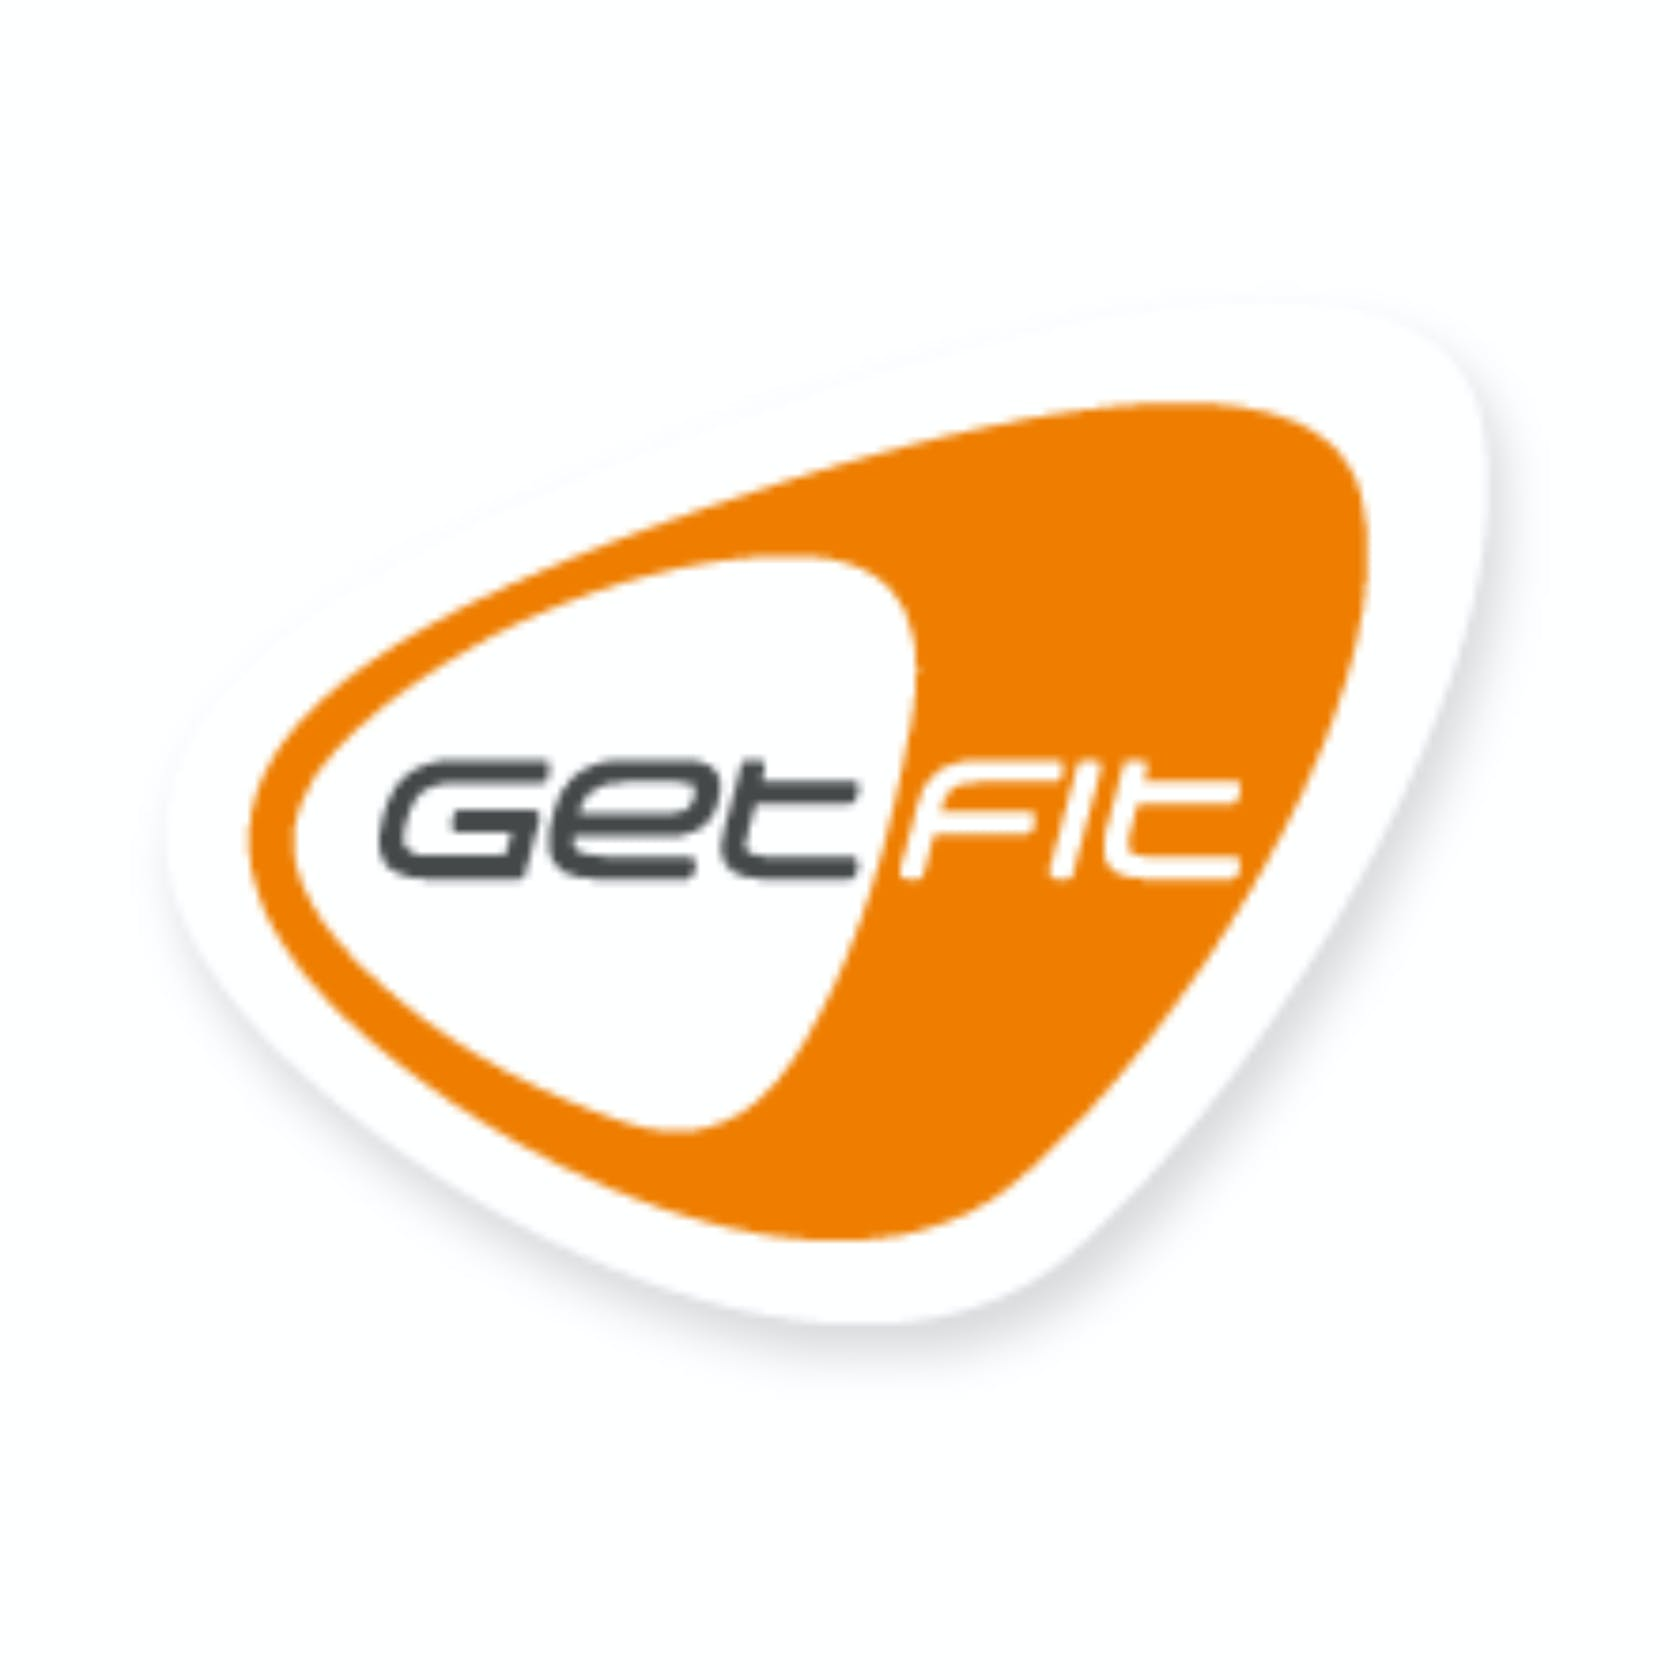 Get Fit shop online